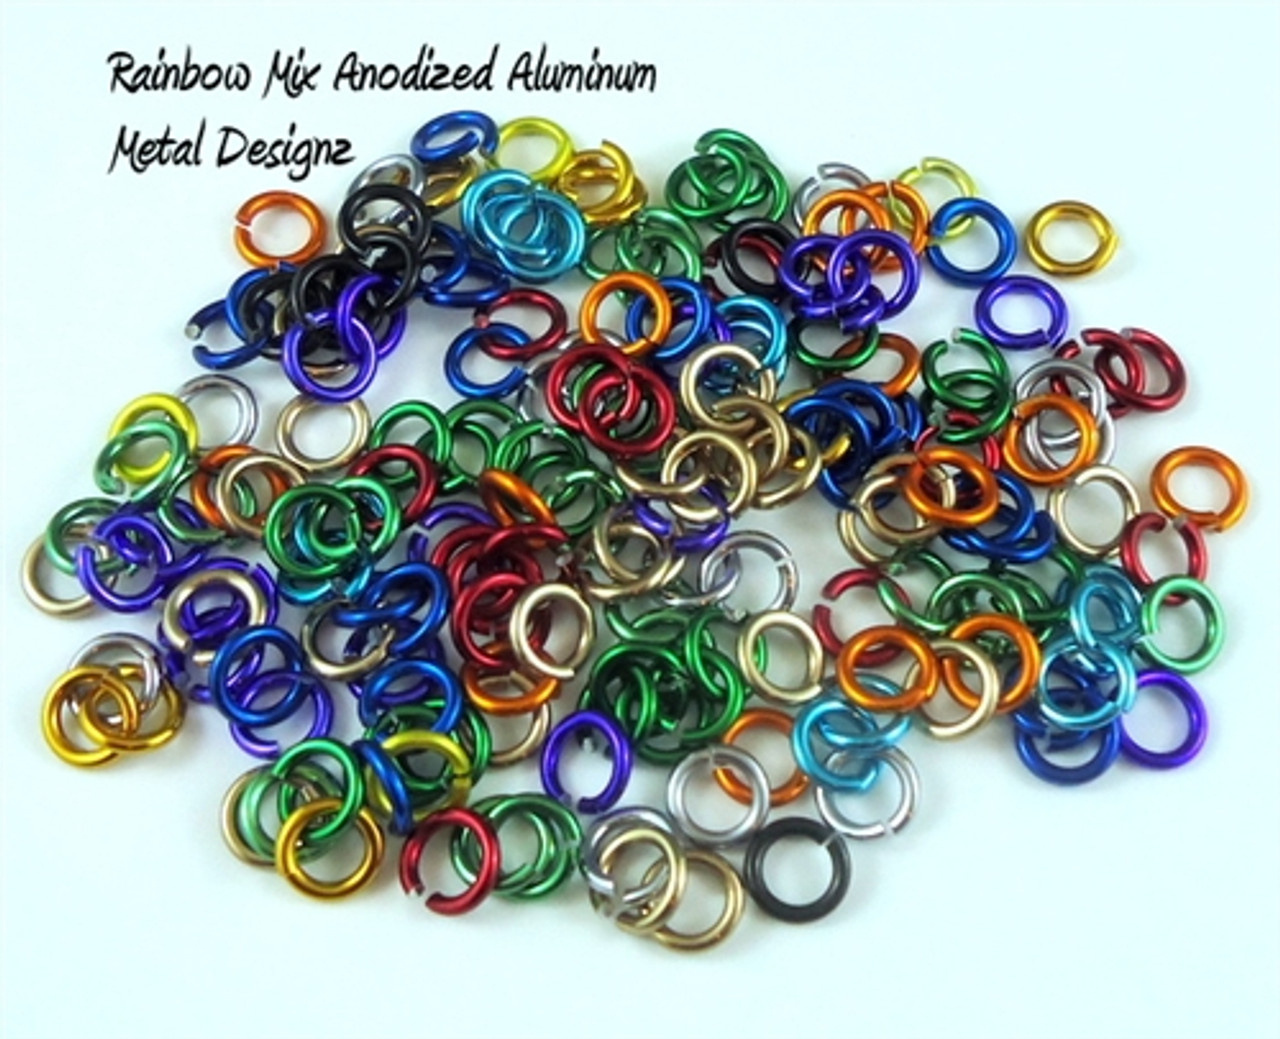 PINK Anodized Aluminum JUMP RINGS 500 5//32 18g SAW CUT Chainmail chain mail